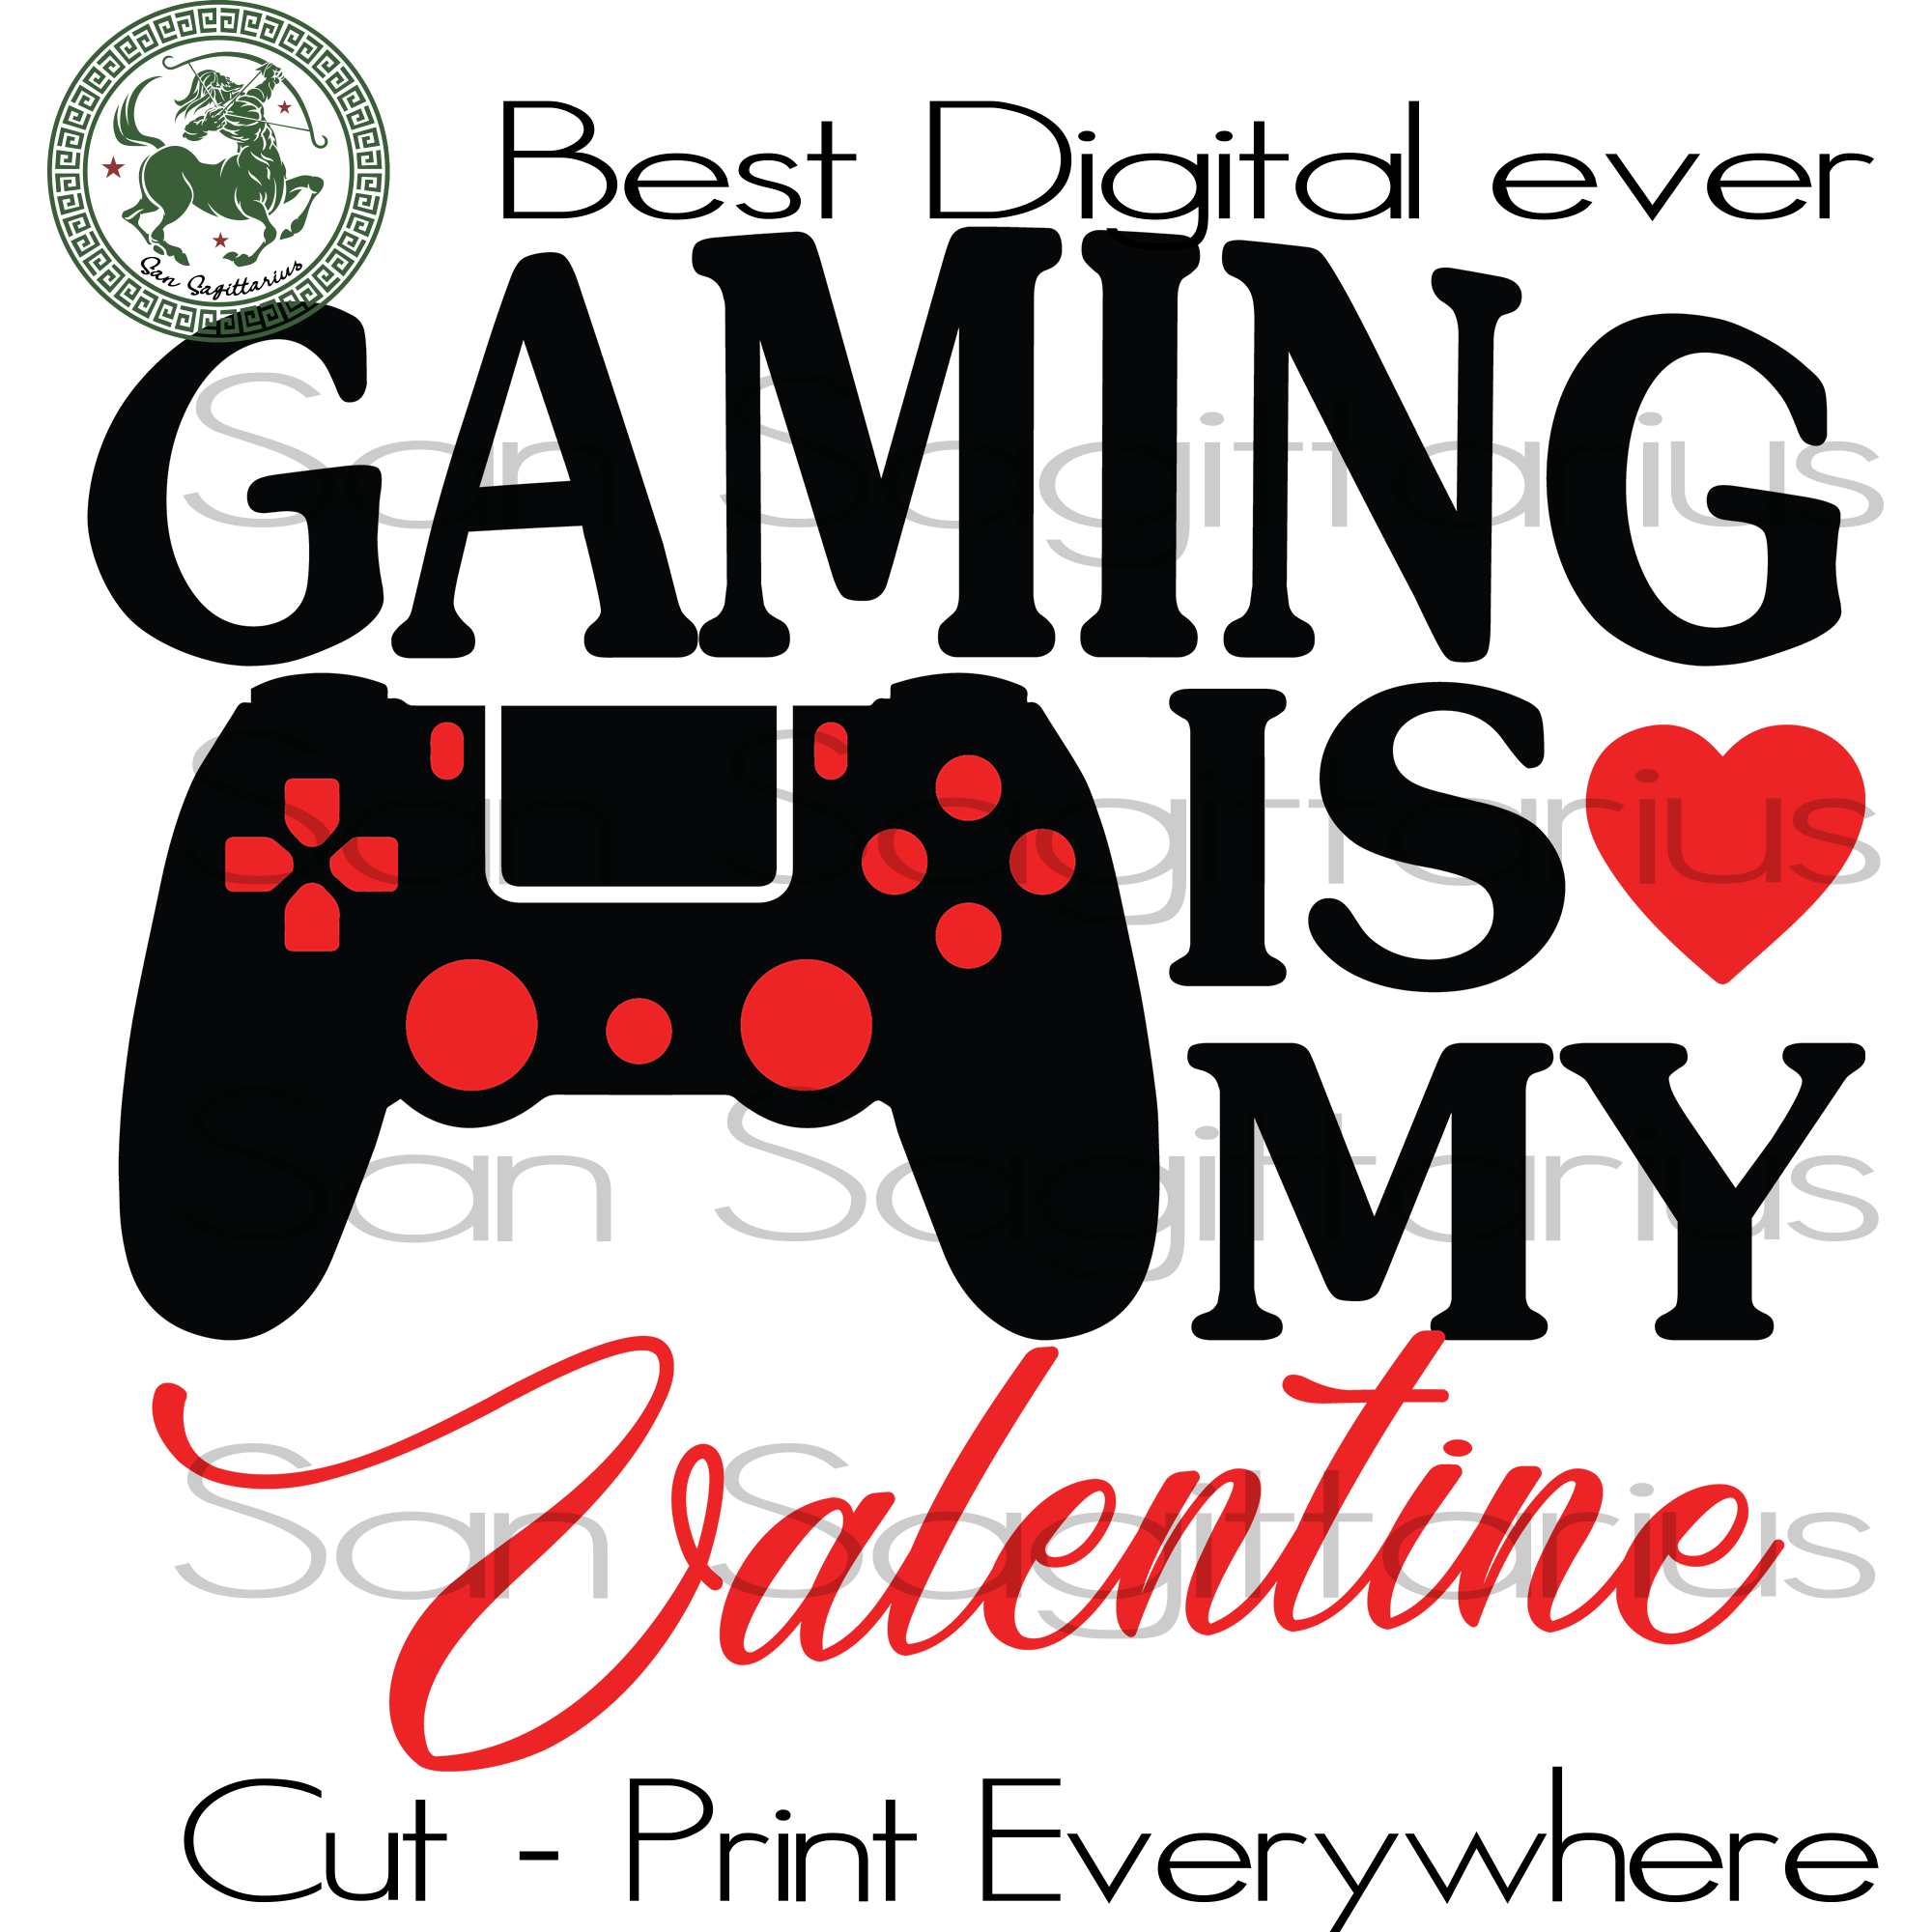 Gaming Is MY Valentine Svg, Gamer Gift Svg, Game Player Cut File, Valentines Day Personalized, Valentines Day Gift Customized, Valentine Saying Cricut, Mom dad Mimi Valentines Day Gift Svg SVG Files For Cricut Silhouette Instant Download | San Sagittarius